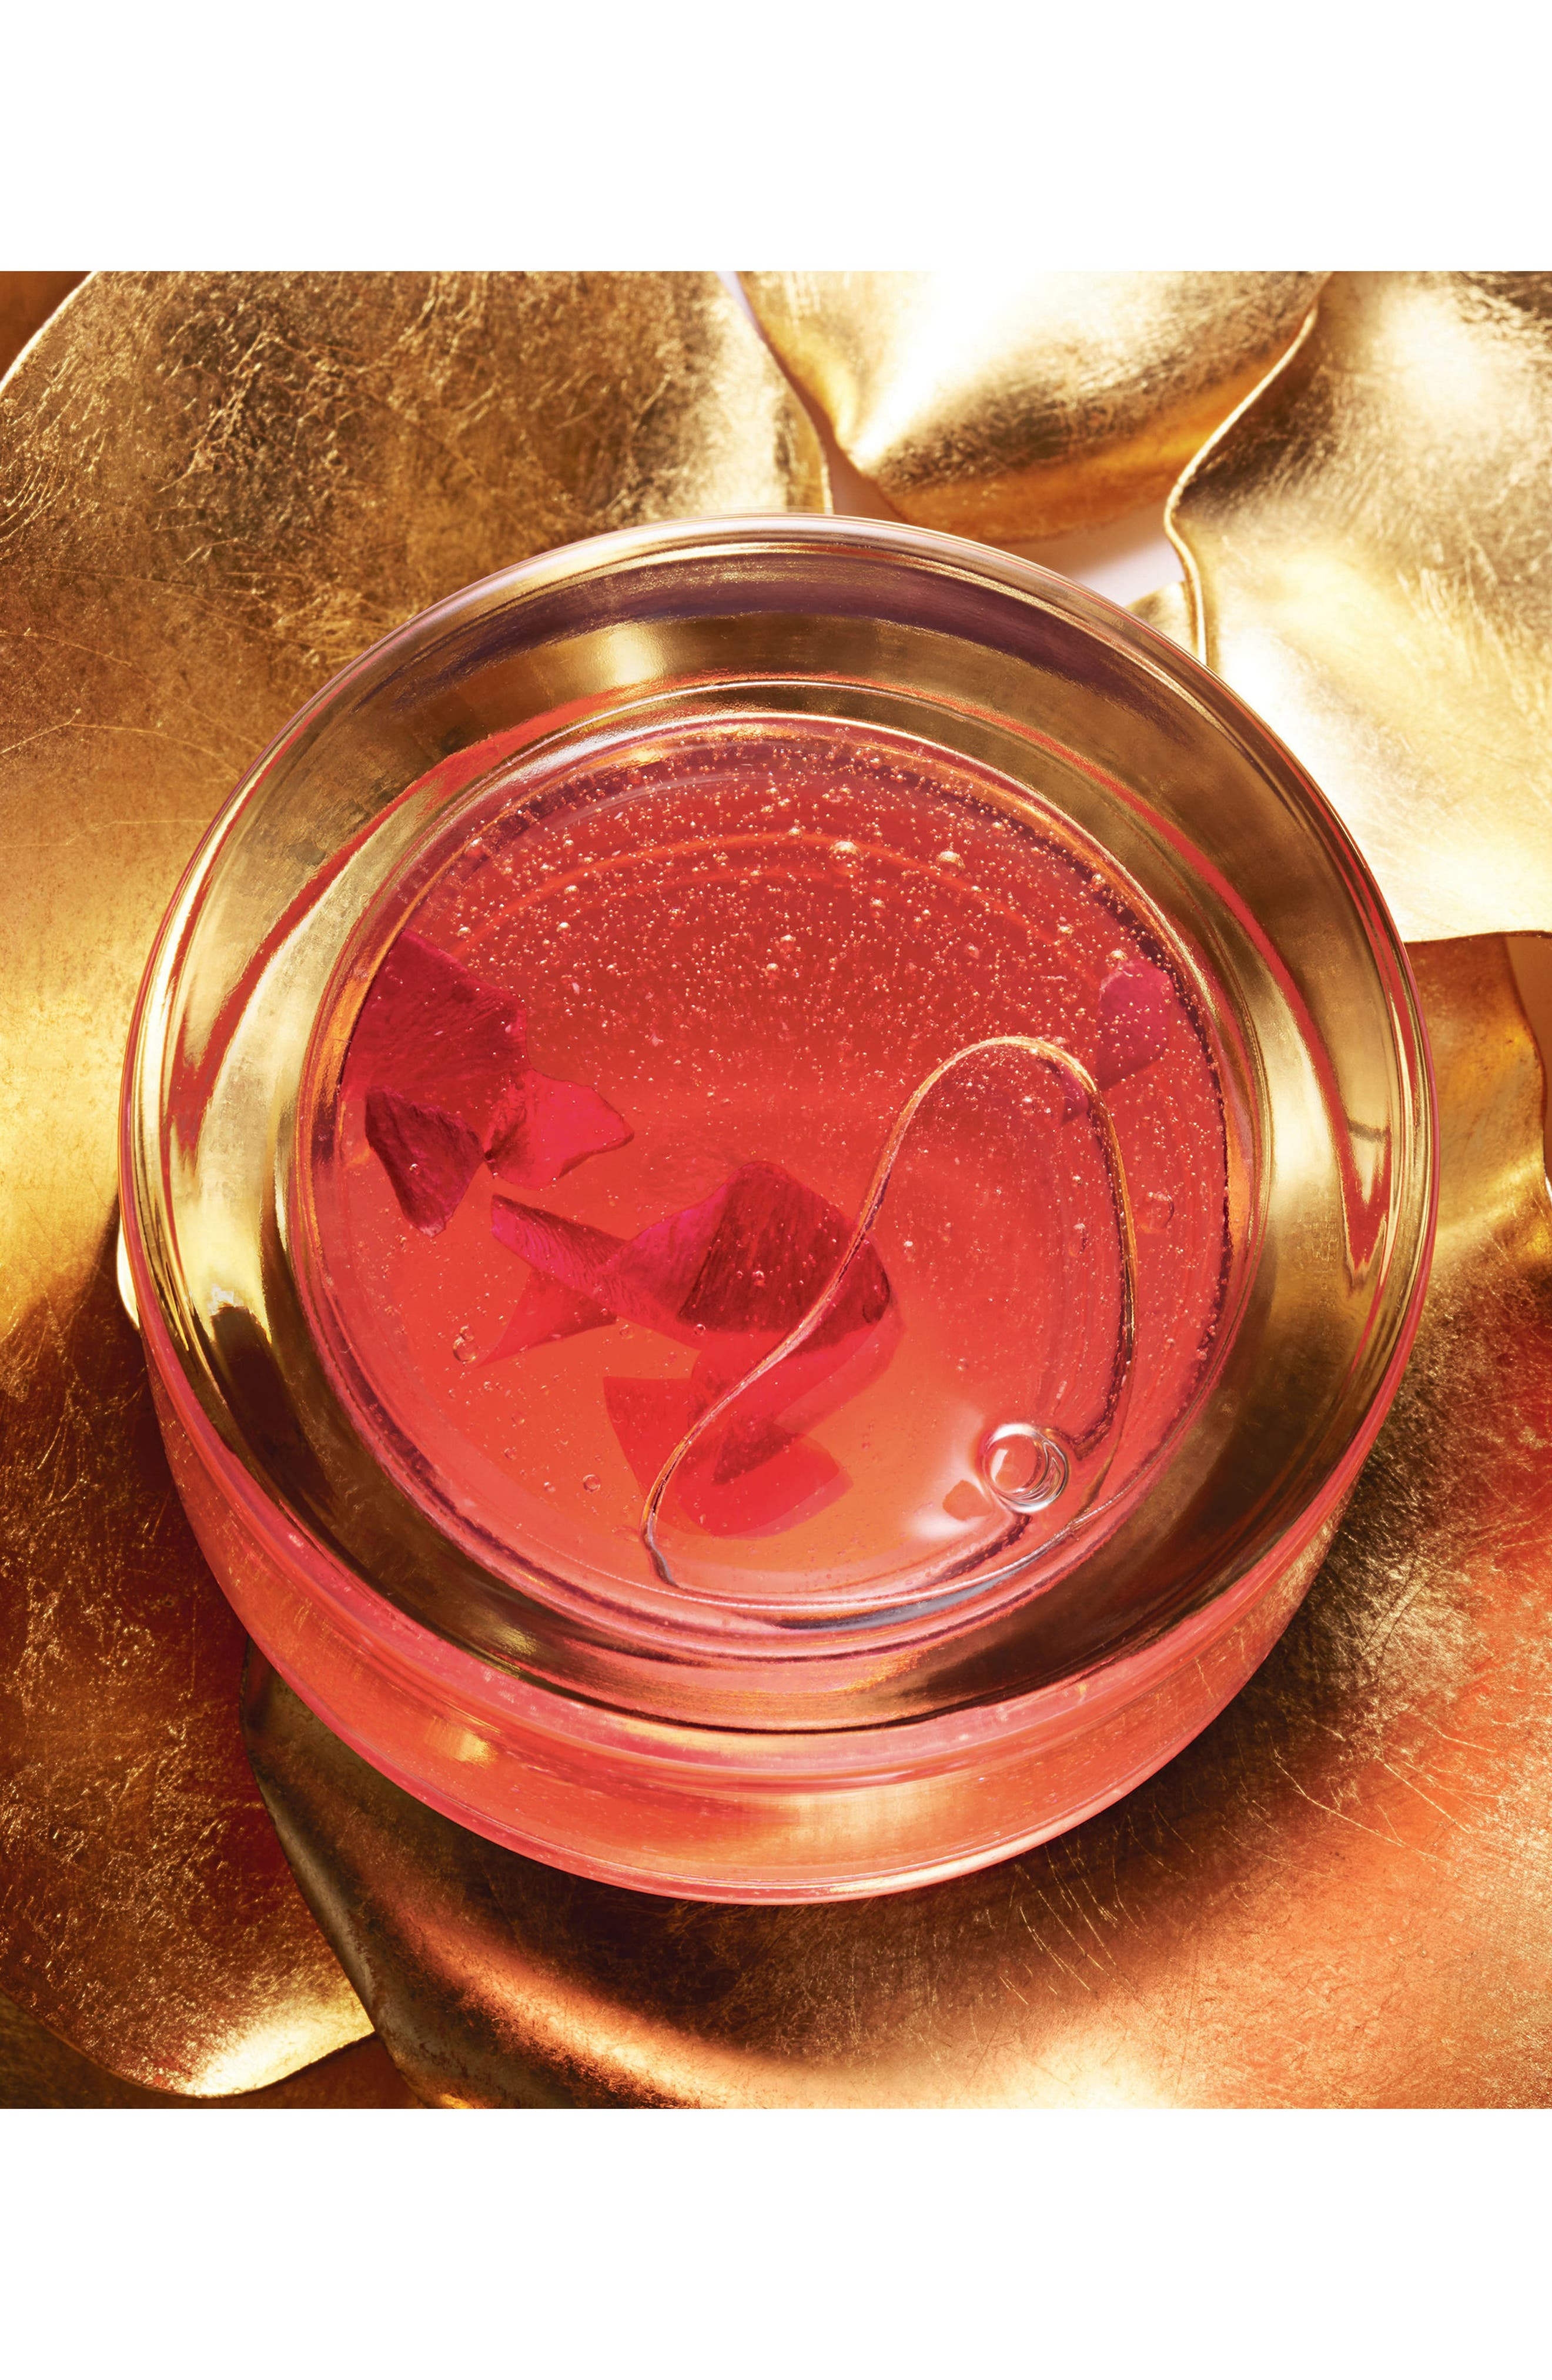 Alternate Image 2  - Lancôme Absolue Precious Cells Nourishing & Revitalizing Rose Face Mask